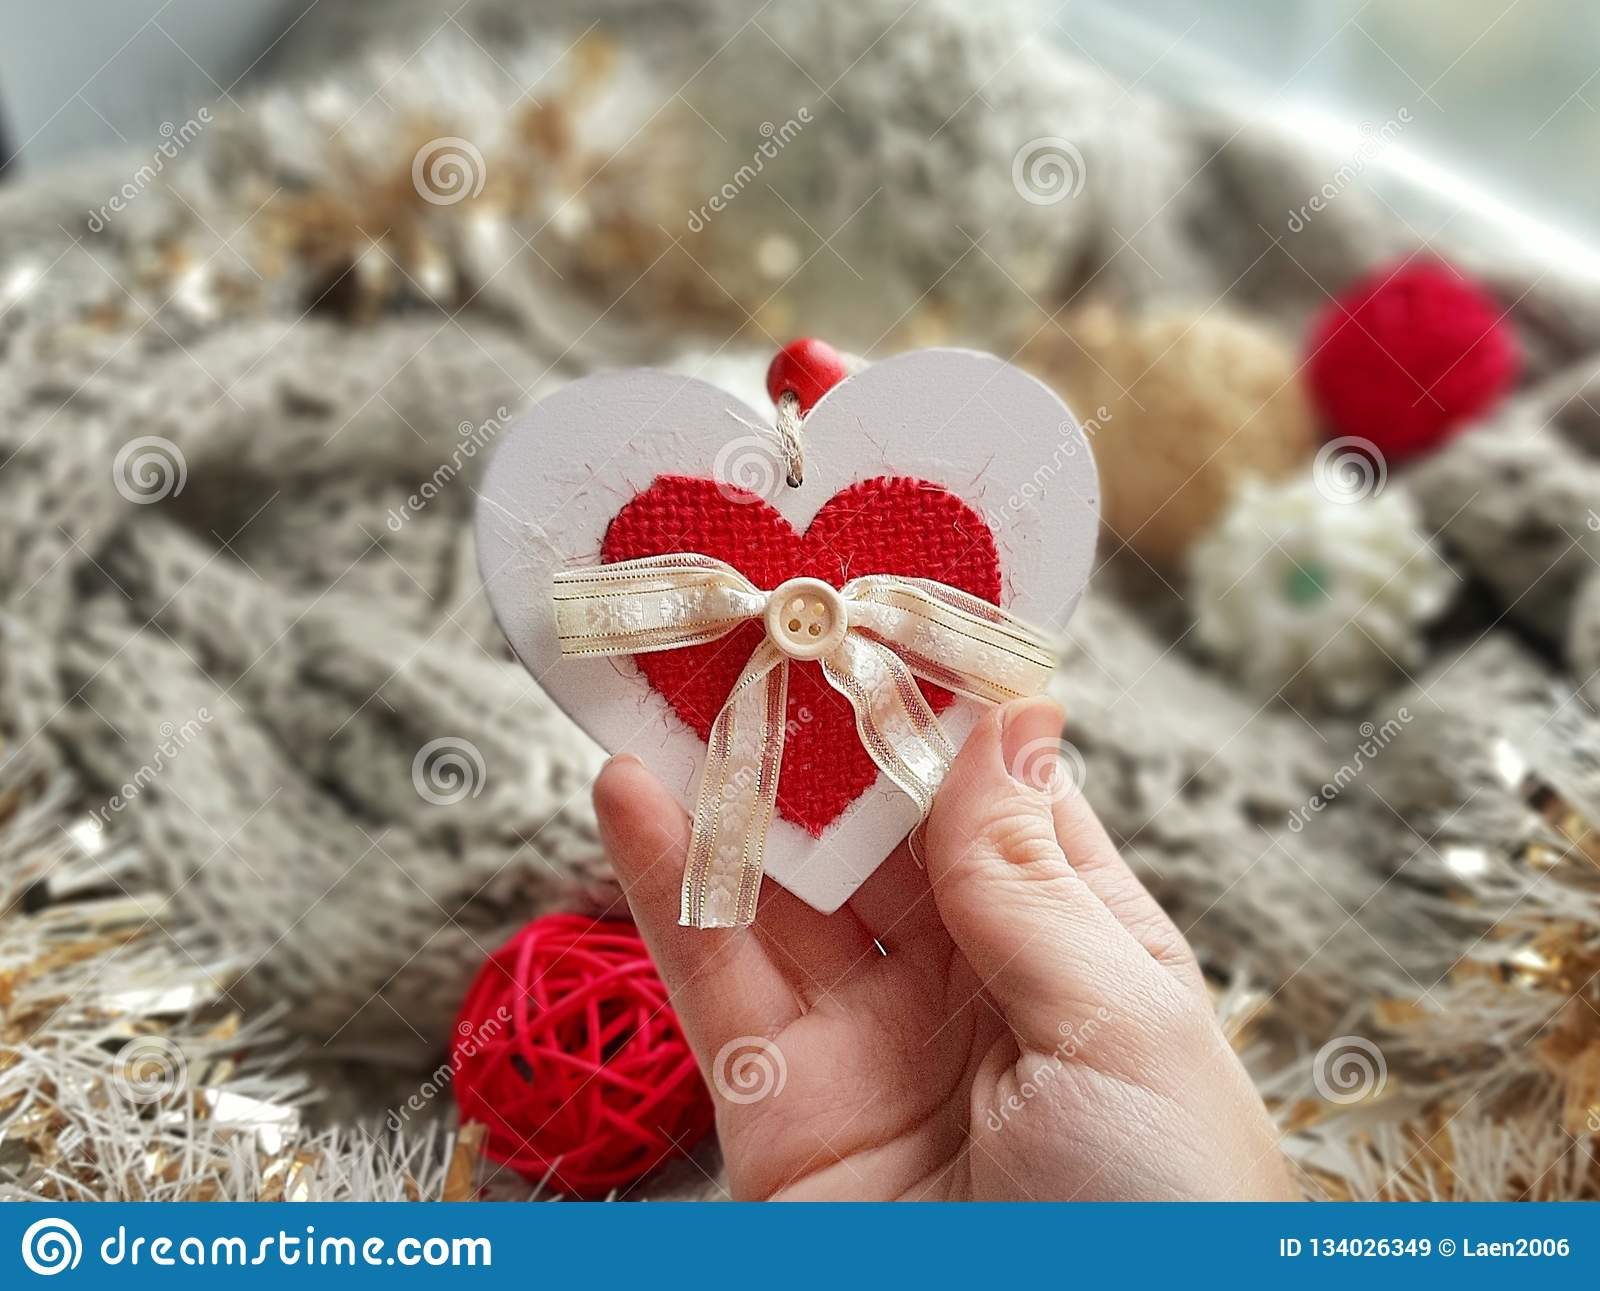 Love holiday greeting card. White and red heart in woman hand on cozy hygge background.